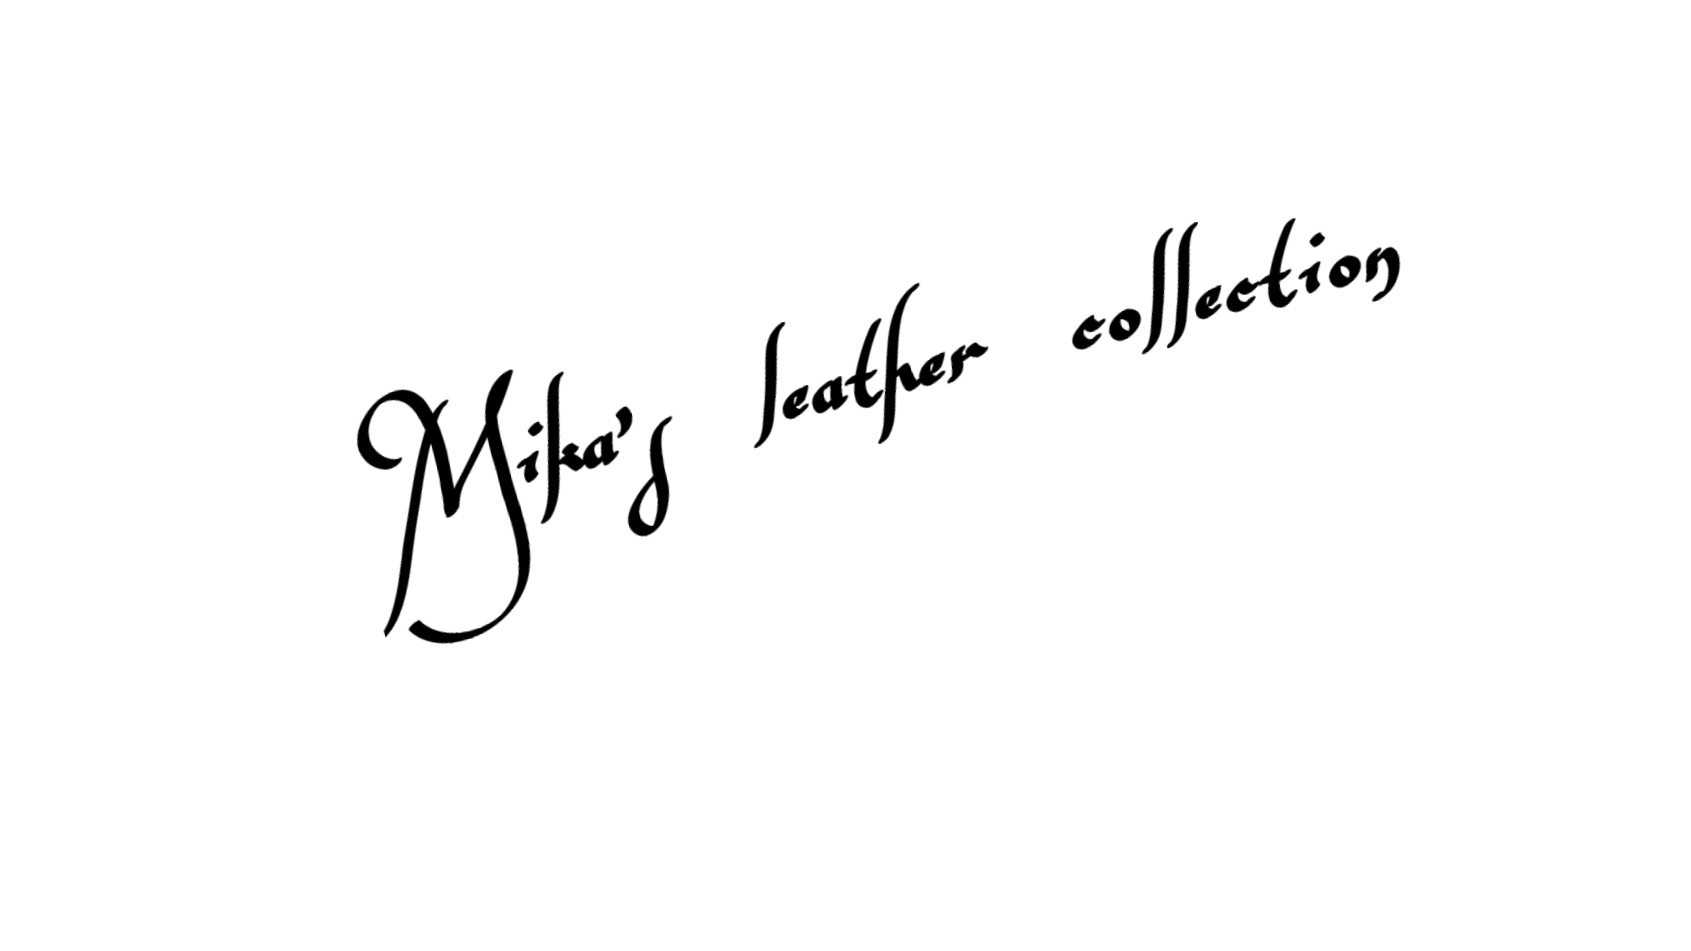 Mika's leather collection